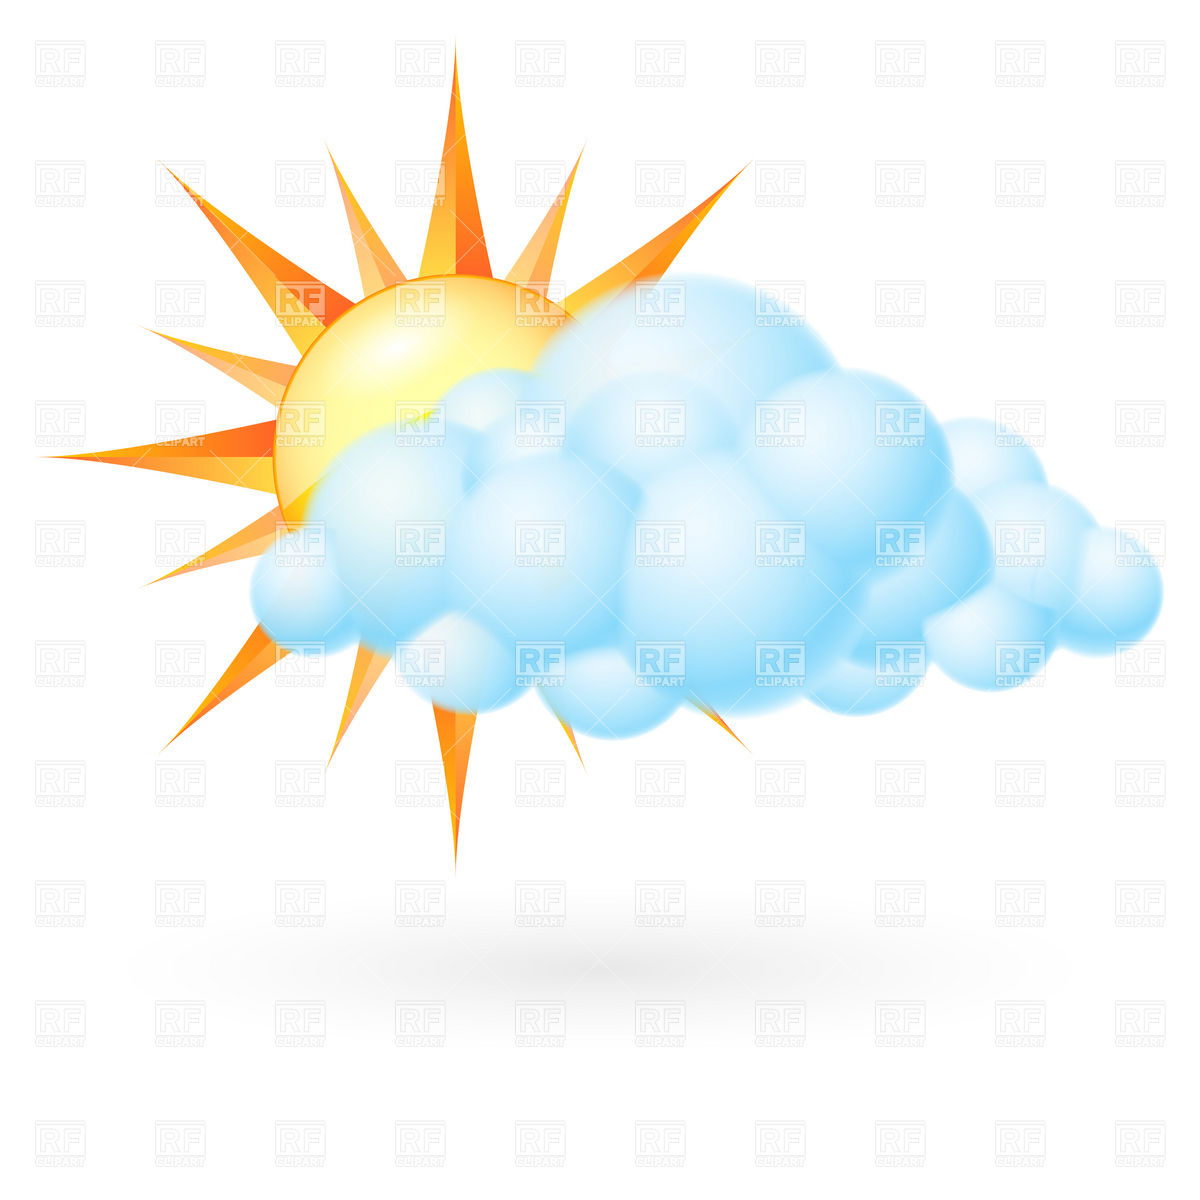 Cloudy Weather Icon 9177 Download Royalty Free Vector Clipart  Eps